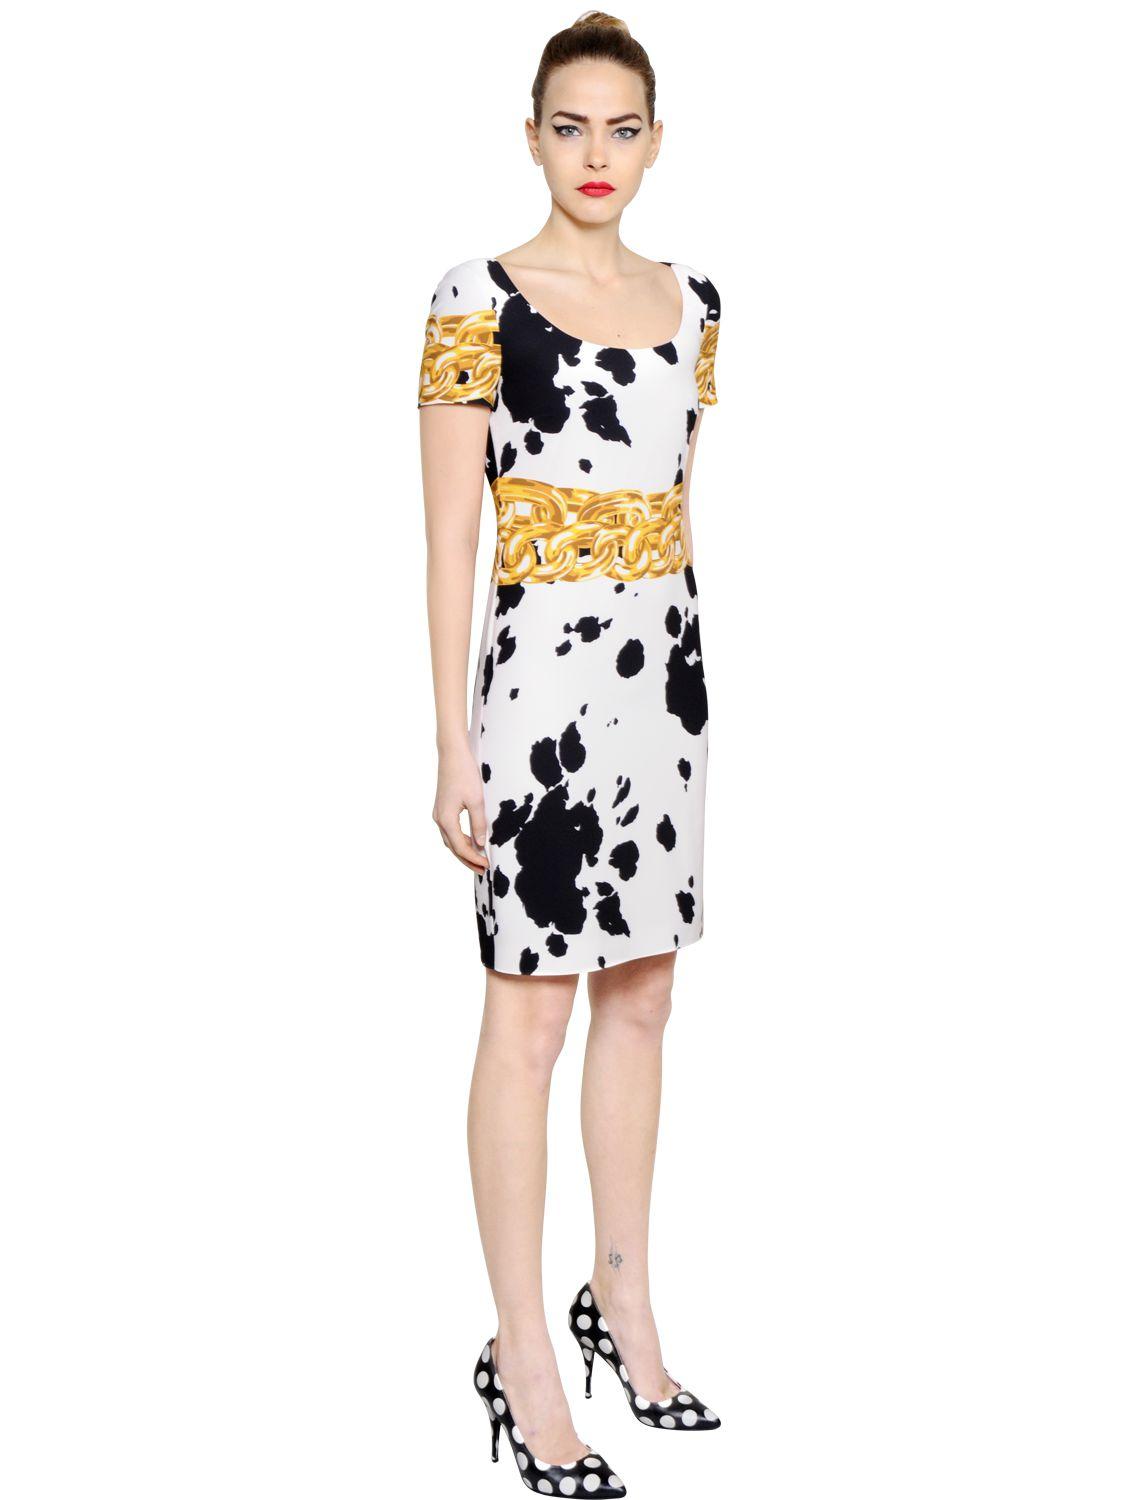 ... Lyst - Boutique moschino Cow Printed Stretch Techno Crepe Dress in Black  big sale 3c06c 14b56 ... 72a908683